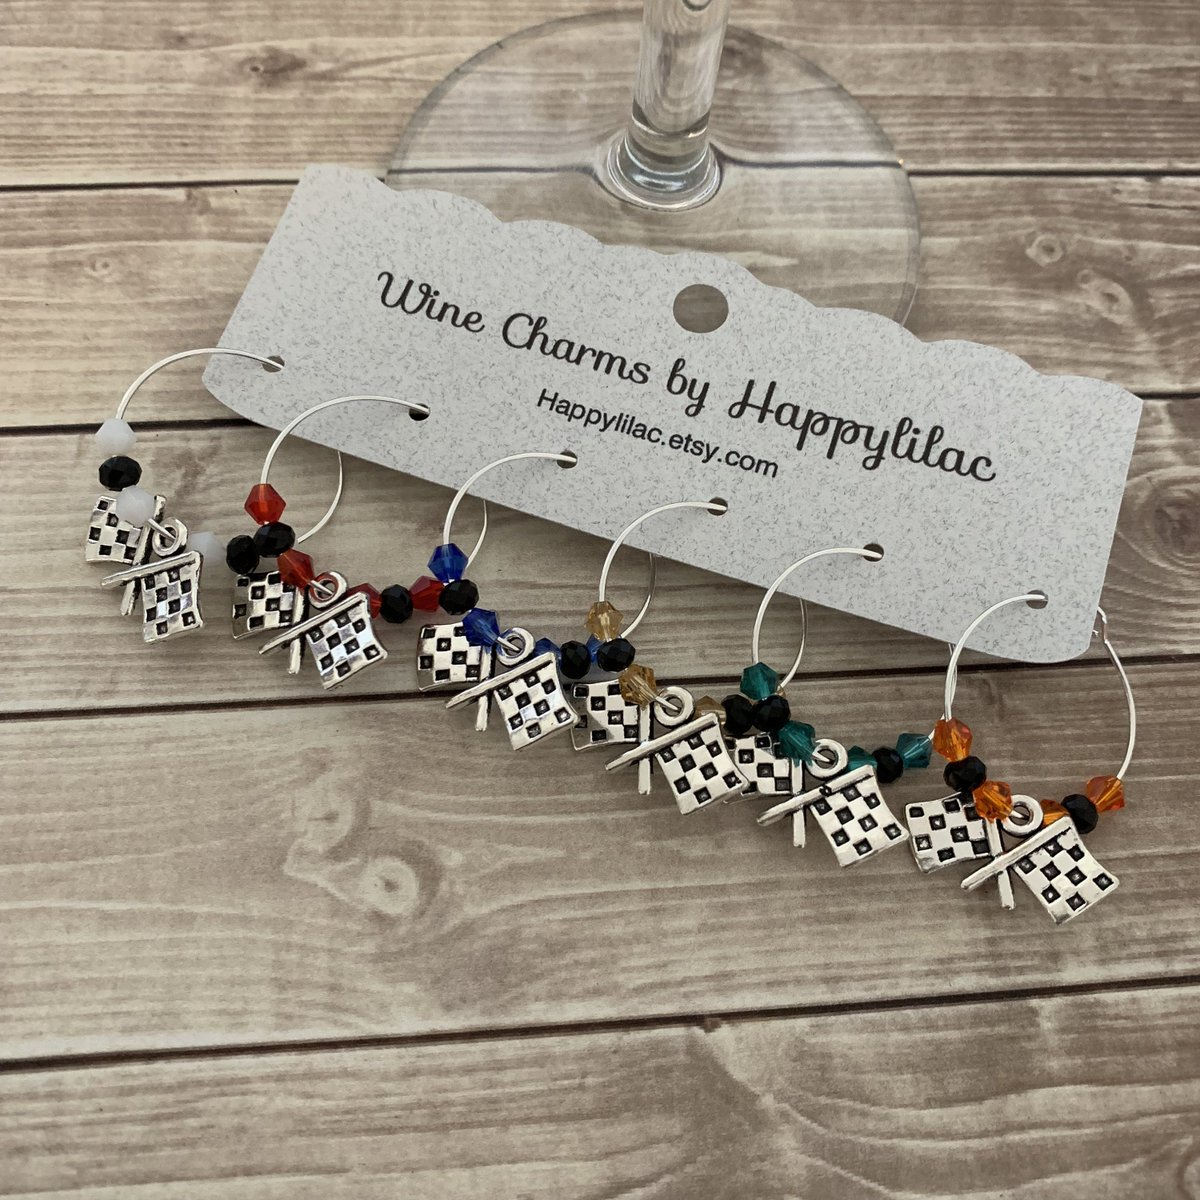 test Twitter Media - Excited to share the latest addition to my #etsy shop: Checkered Flag Wine Charms, Racing Wine Charm #NASCAR #FormulaOne #6WineCharms #IndyCar #RaceCar #CheckeredFlag #F1 #RaceFan #NHRA #DragRace https://t.co/5mtGM7NzKk #wineglasscharm #Indianapolis500 #indy500 https://t.co/zoEsFSEHNK